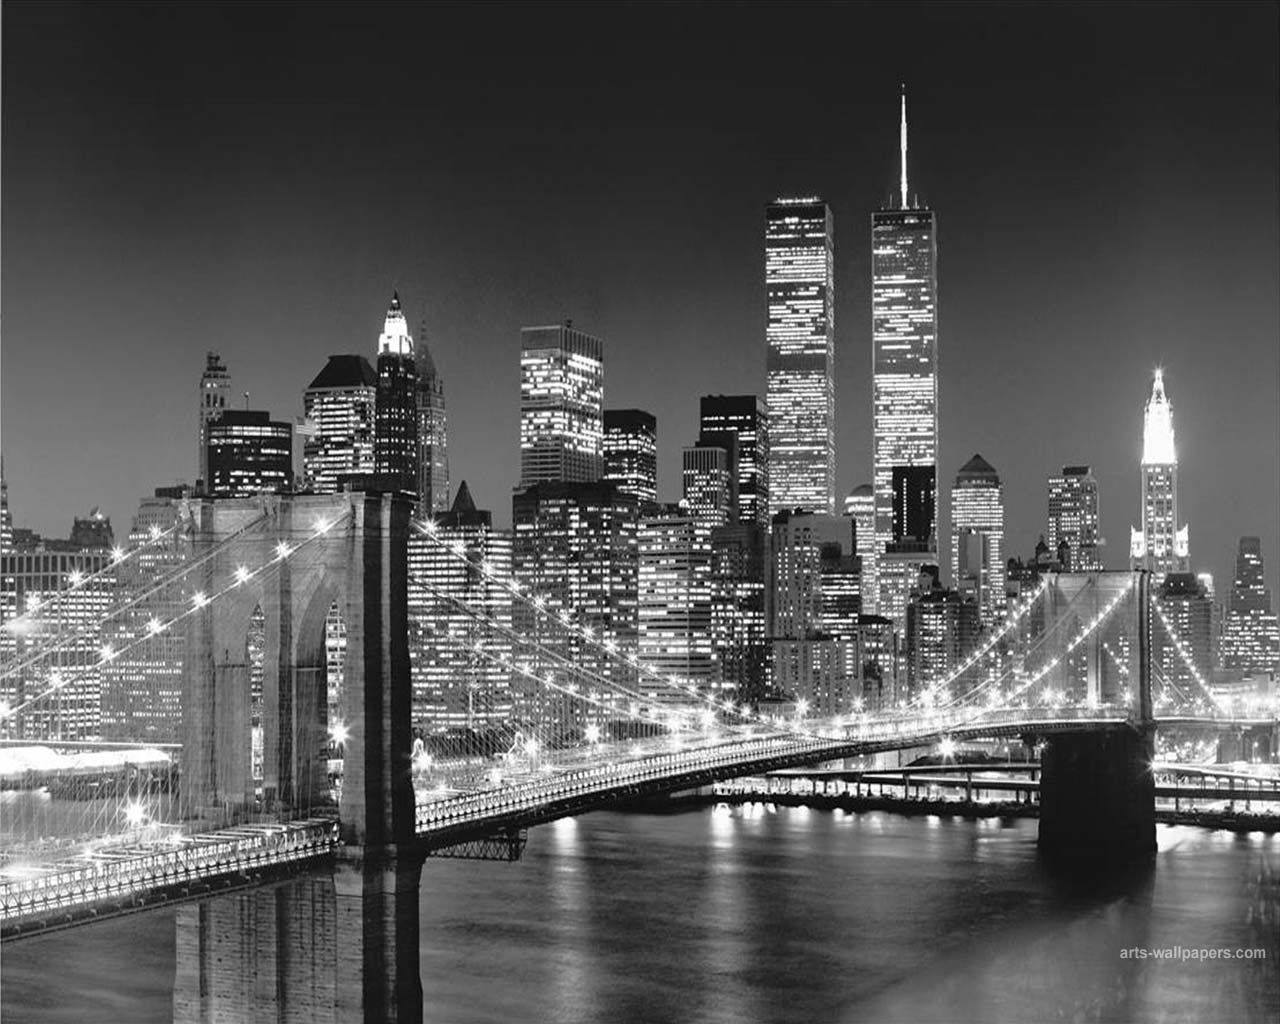 Pin de Ciana Vedo en places i\'ve been. | Pinterest | Nueva york ...